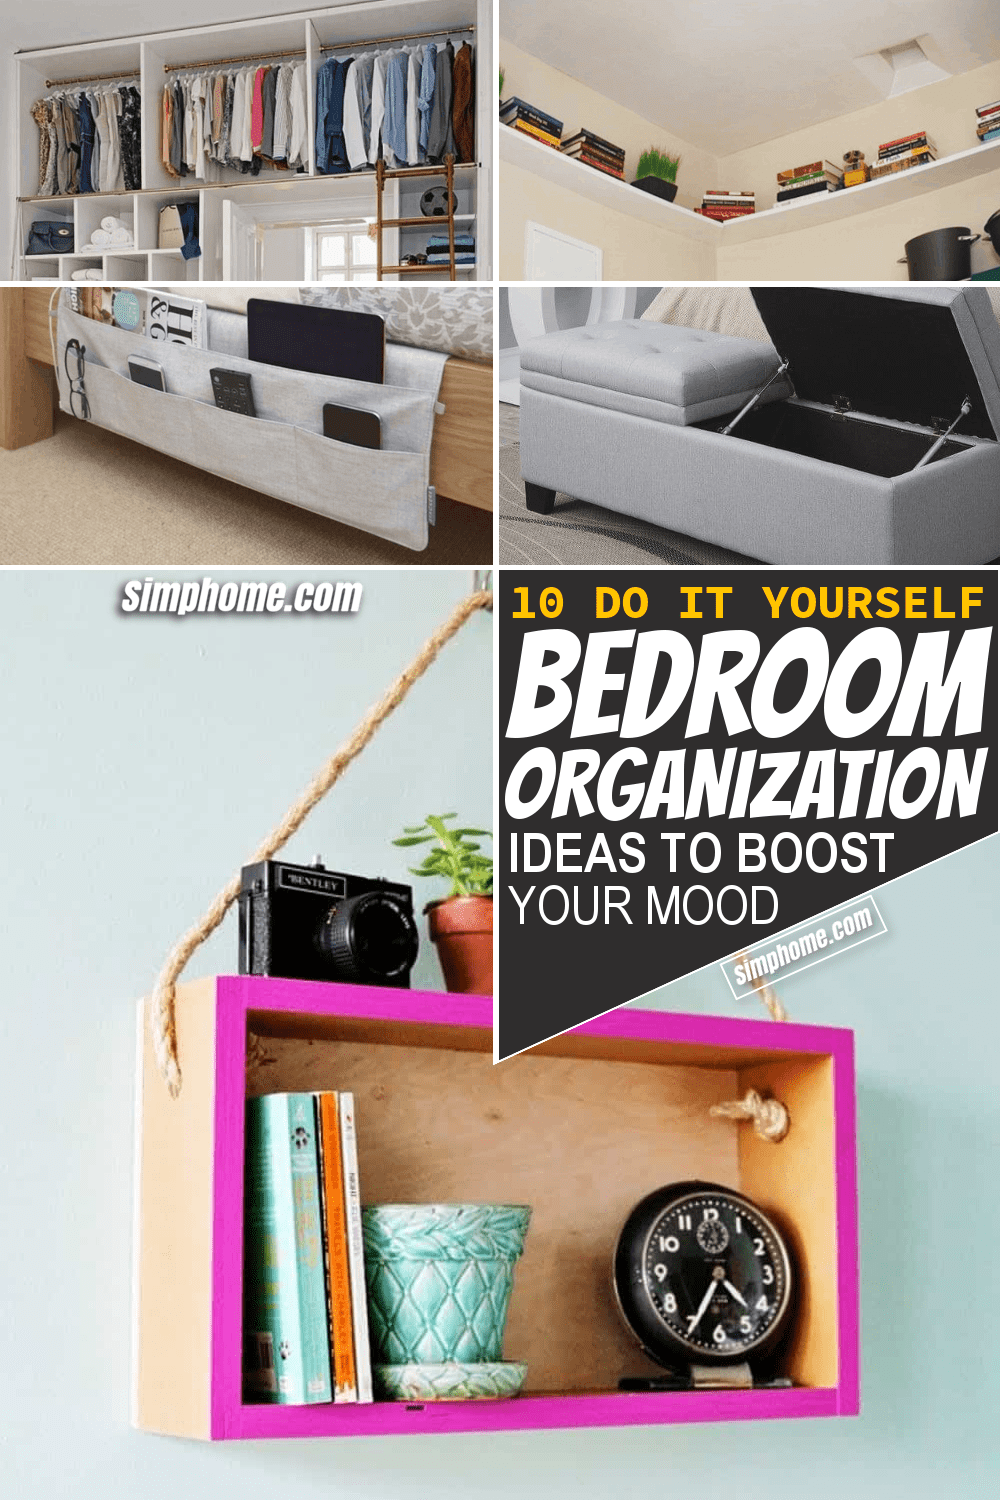 Simphome.com 10 Bedroom Organization Ideas to Boost Your Mood Featured Pinterest Image